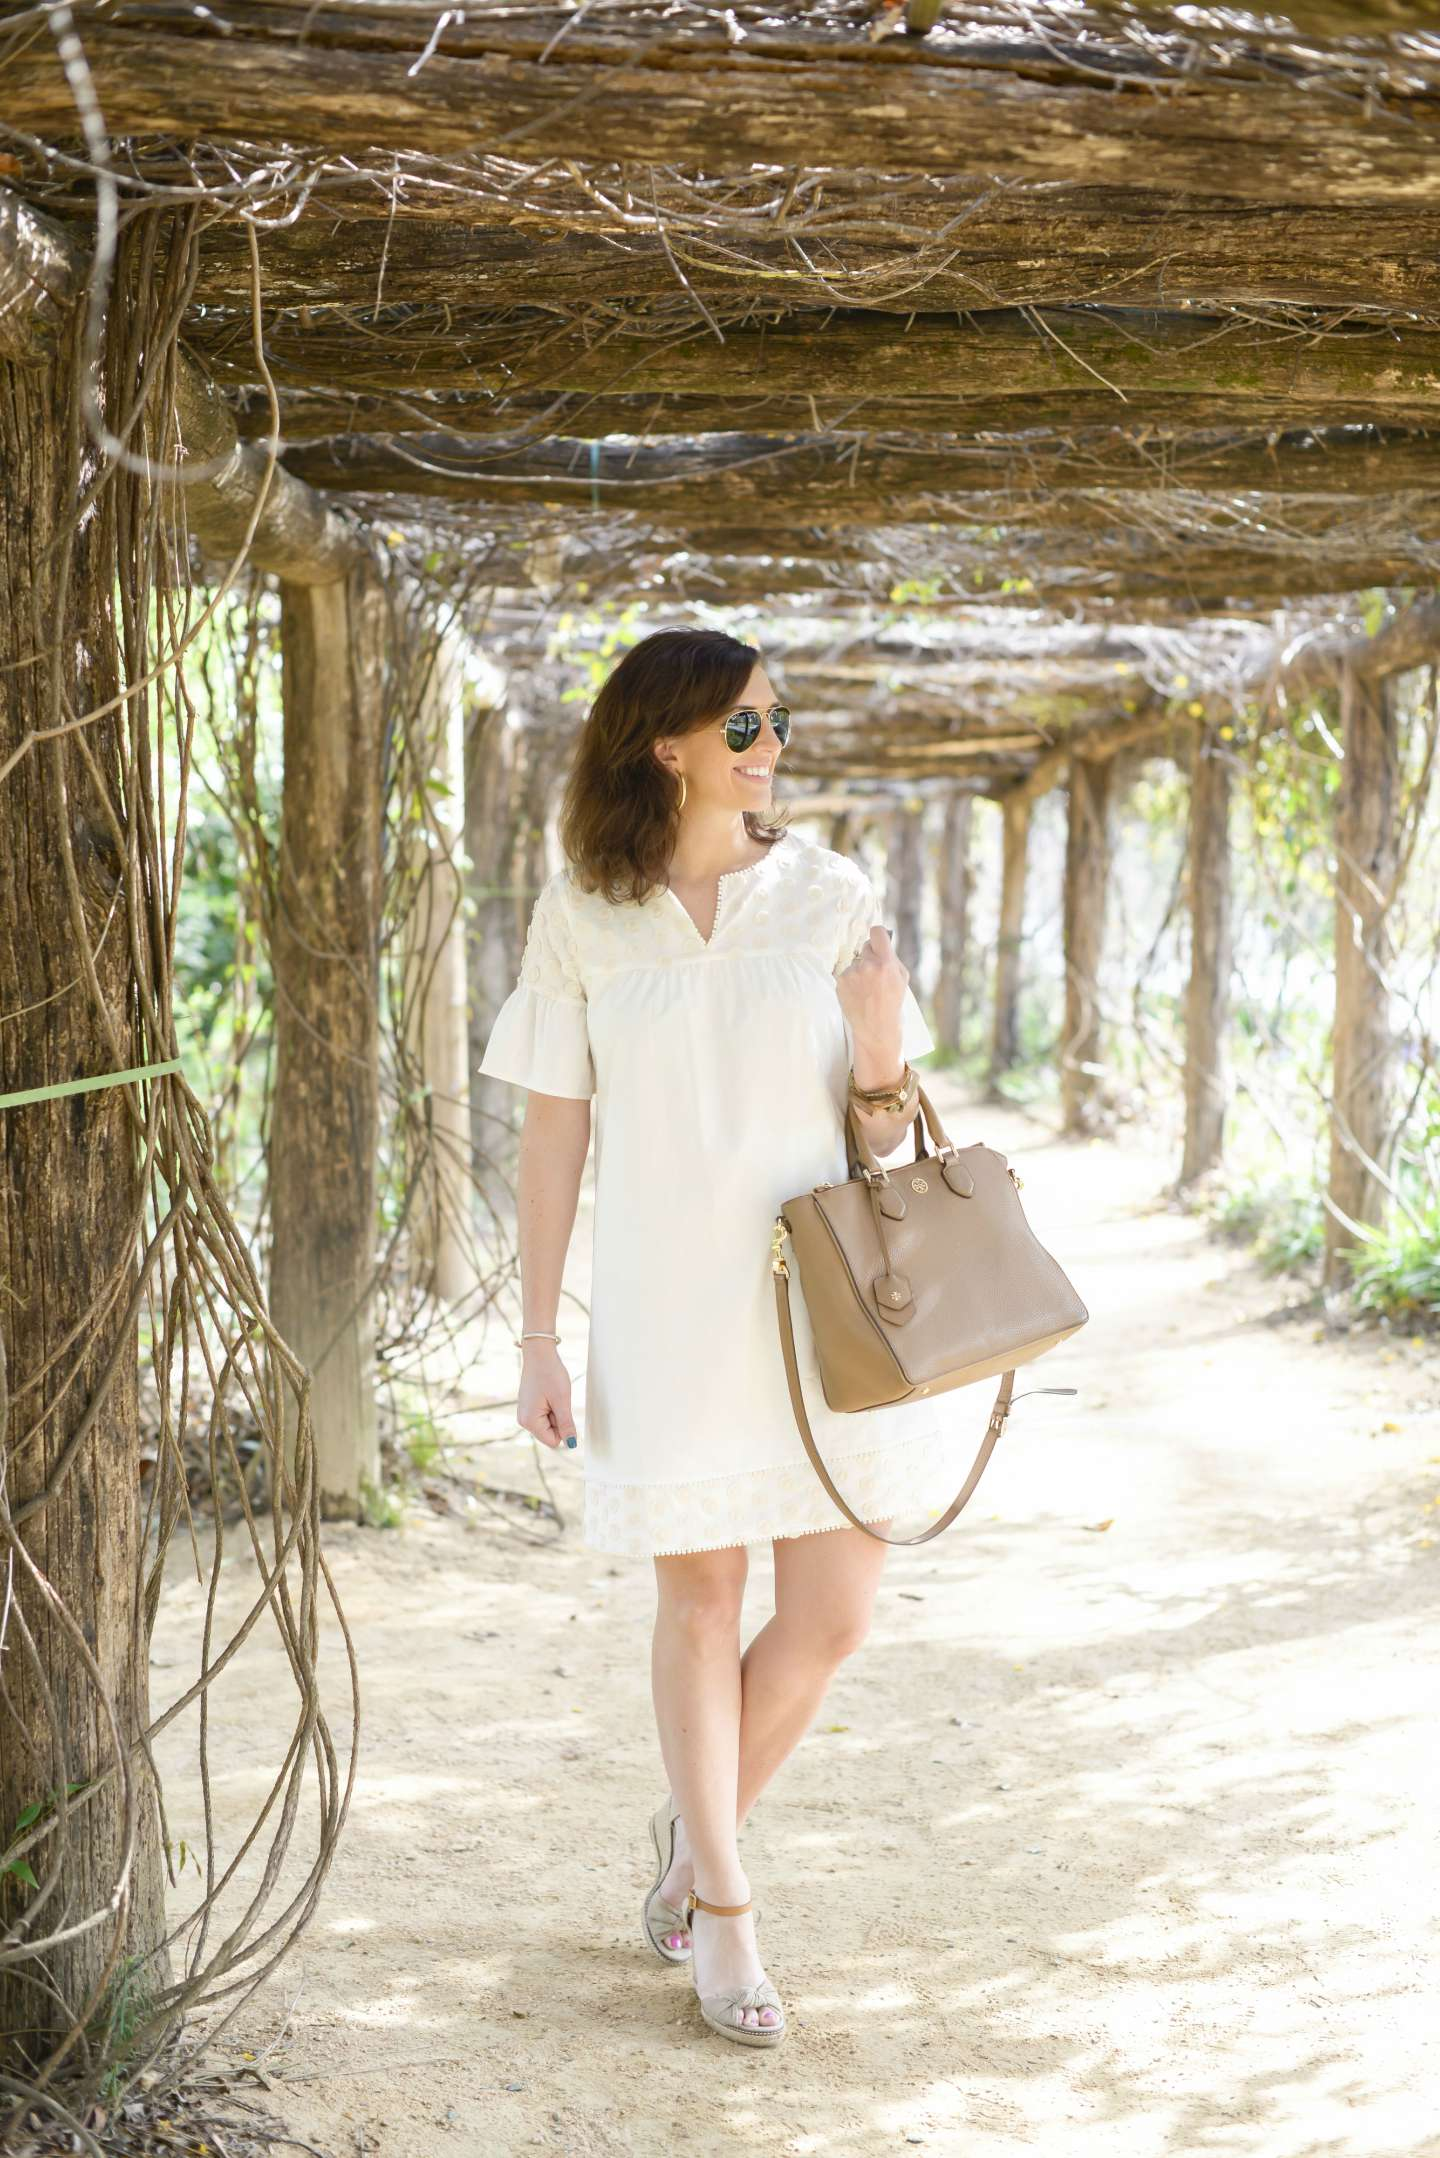 My Favorite Little White Dress for Spring - I'm Fixin' To - @mbg0112